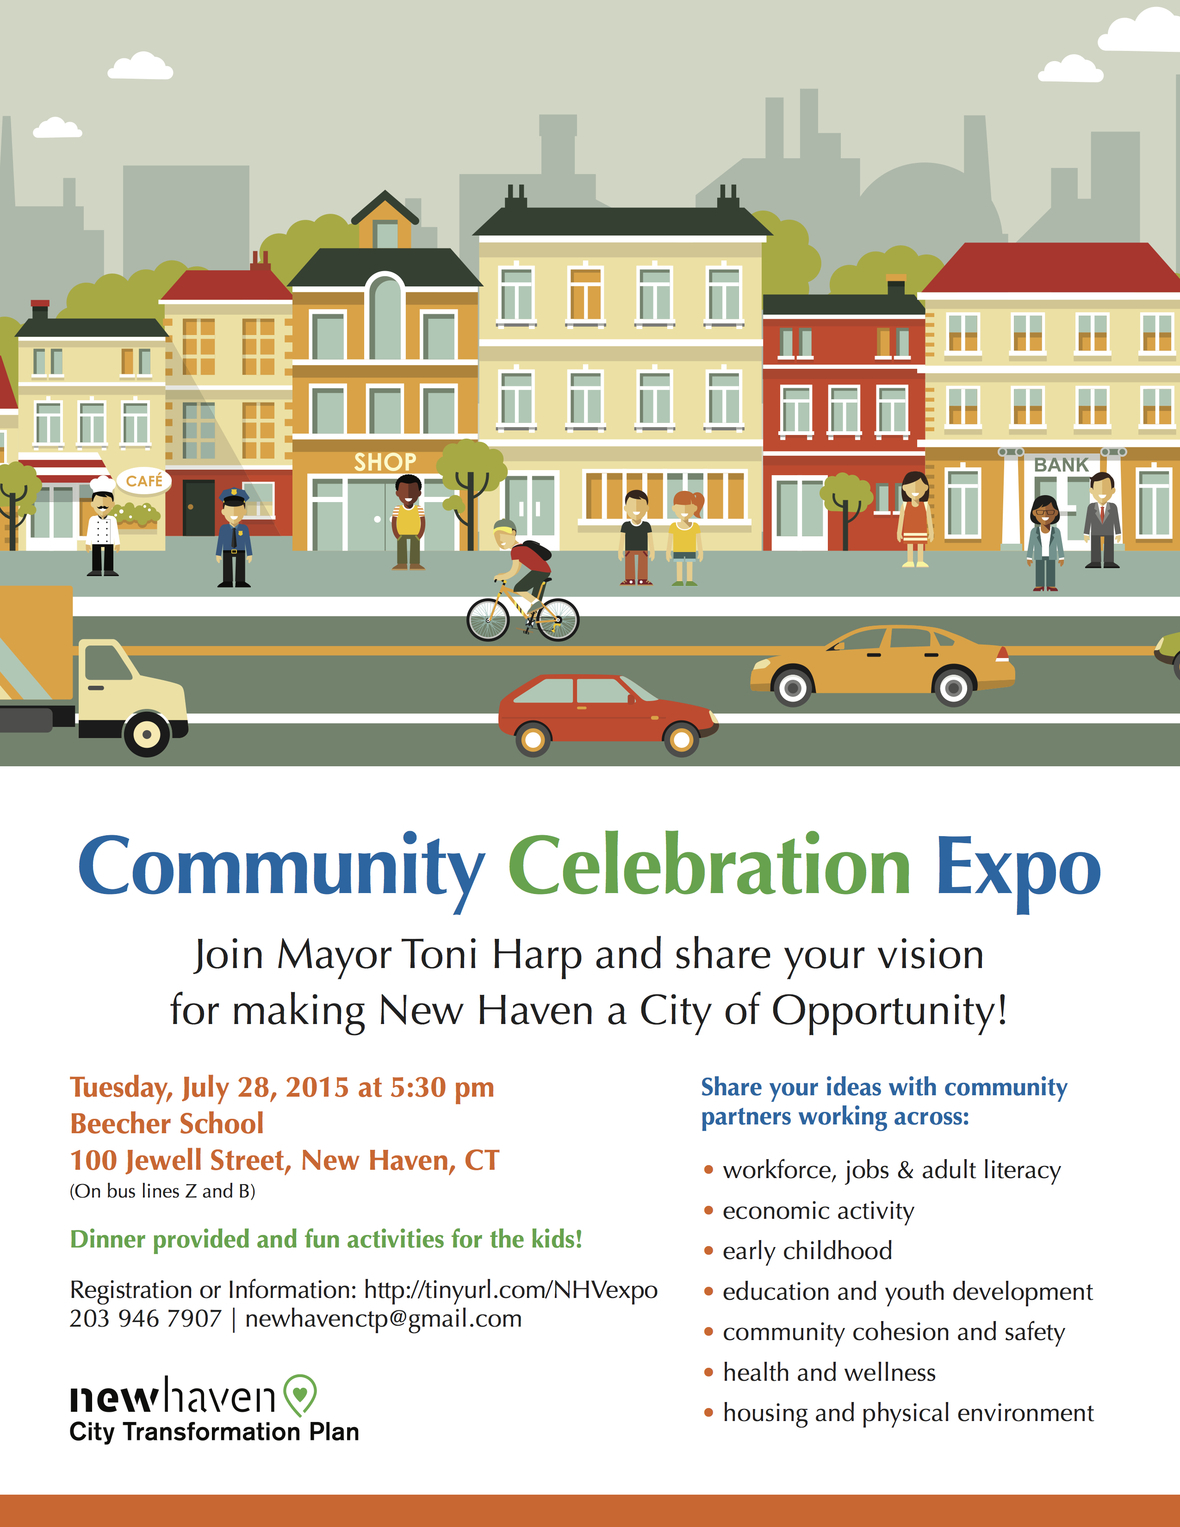 Community Celebration Expo